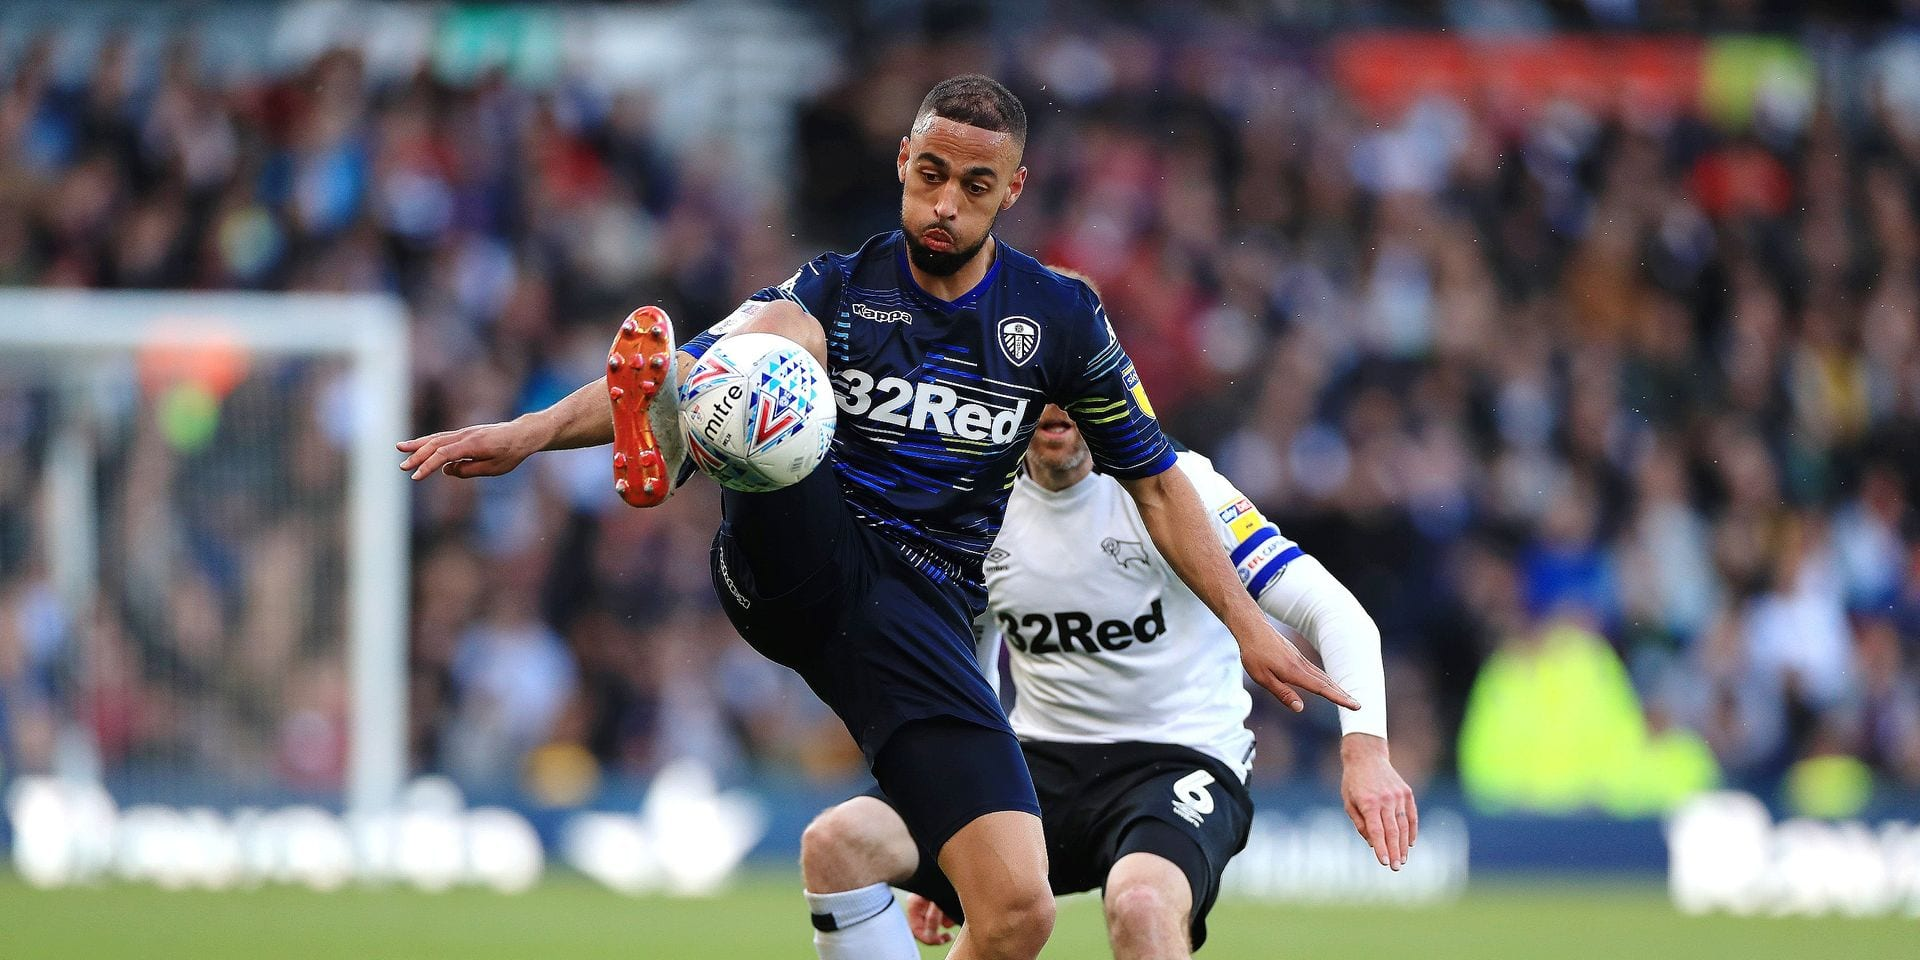 Leeds United's Kemar Roofe (centre) Derby County's Richard Keogh (left) battle for the ball during the Sky Bet Championship Play-off, Semi Final, First Leg at Pride Park, Derby. ! only BELGIUM !